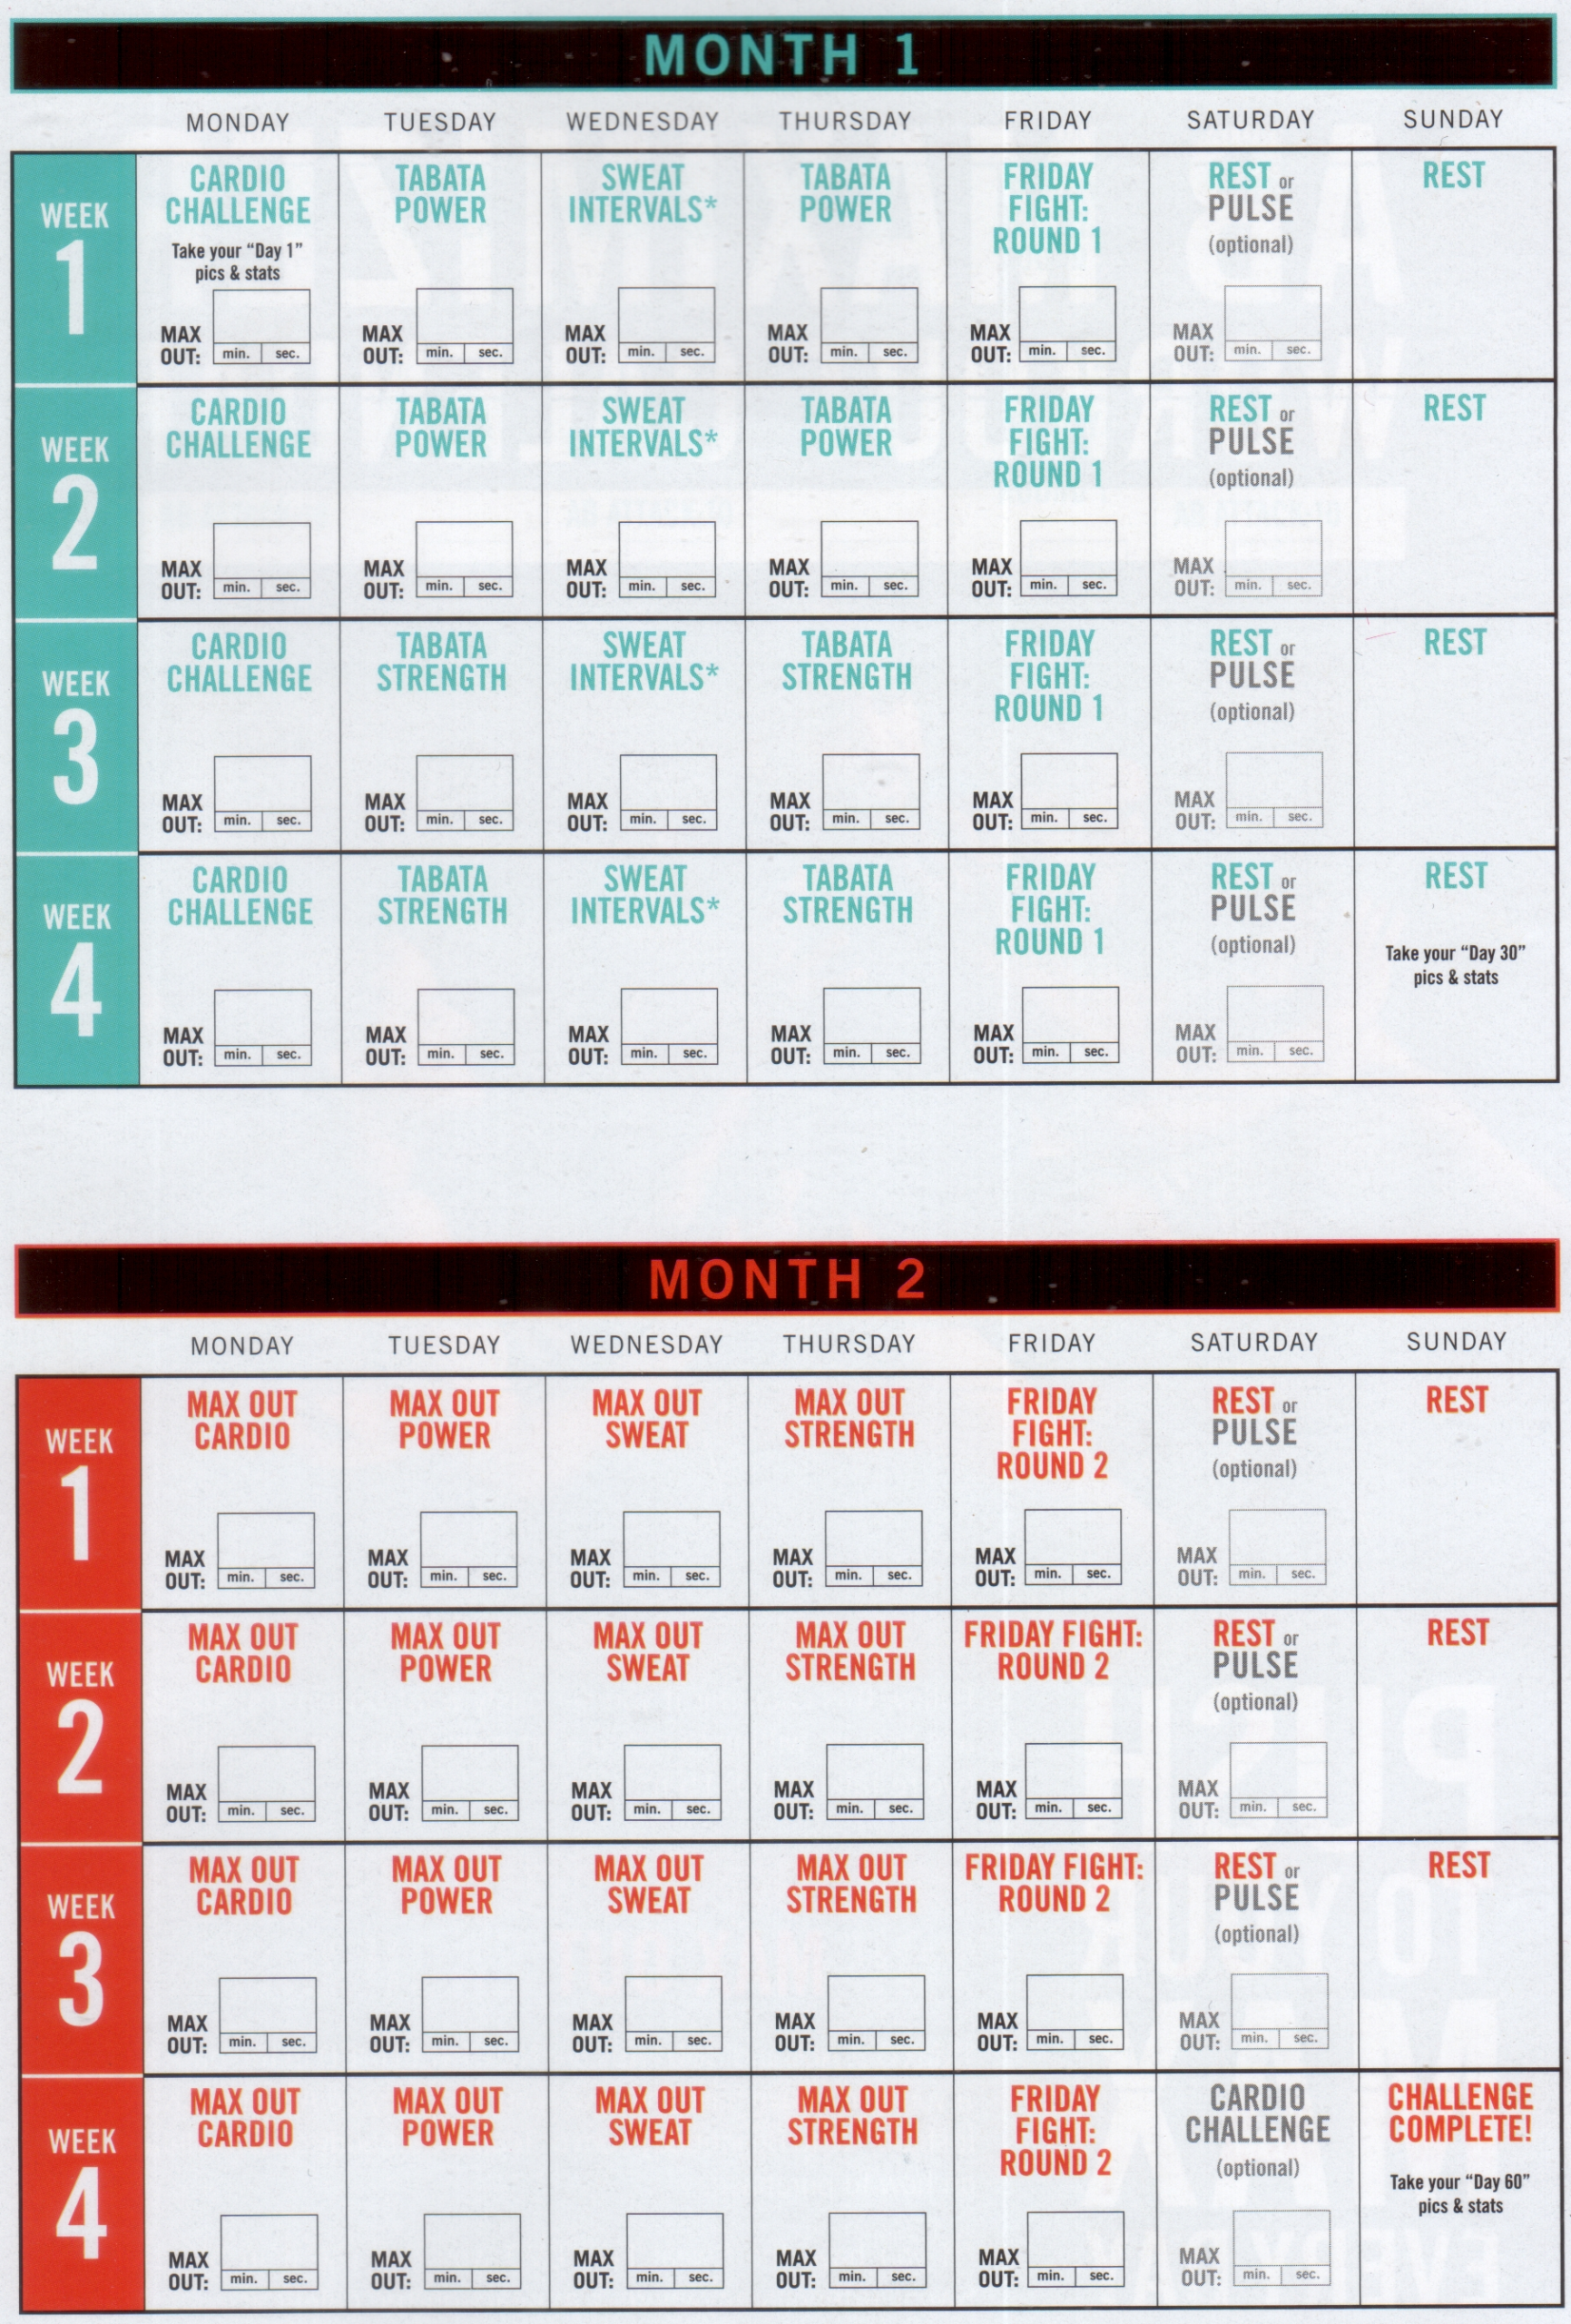 Insanity Max 30 Schedule Pdf   Calendar For Planning pertaining to Calendrier Hybride Insanity Max 30